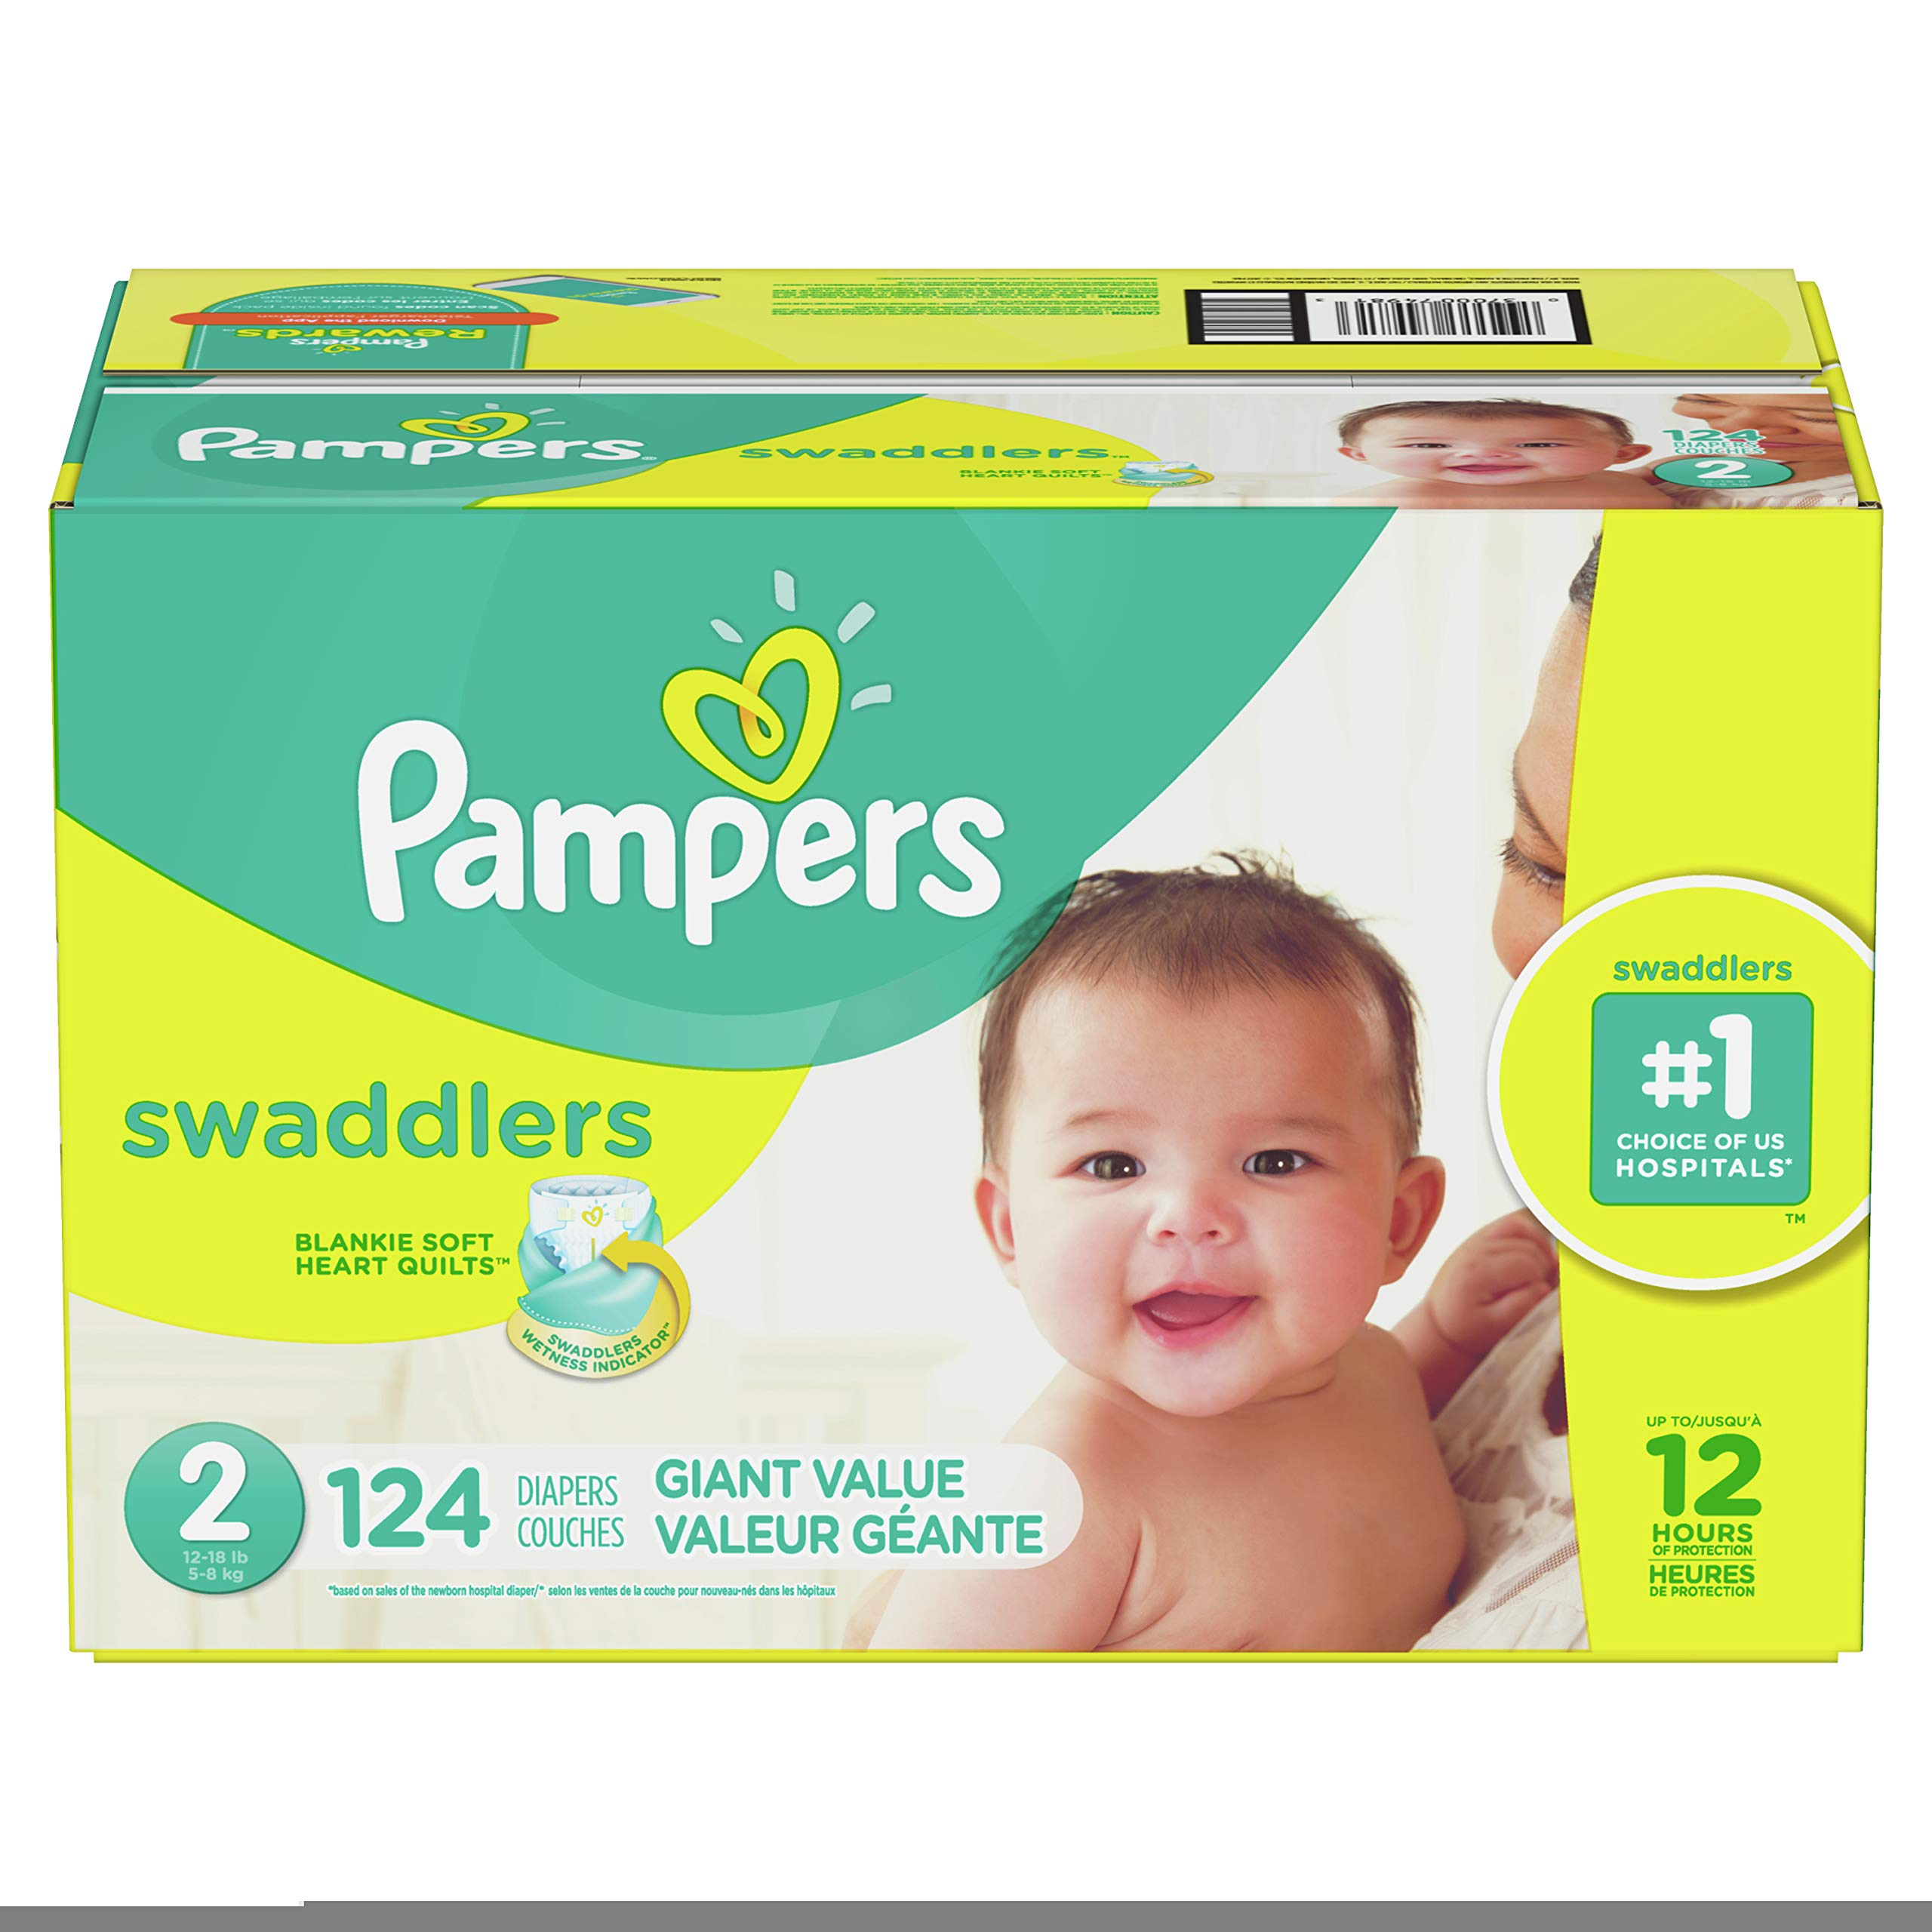 Diapers Size 2, 124 Count - Pampers Swaddlers Disposable Baby Diapers, Giant Pack by Pampers